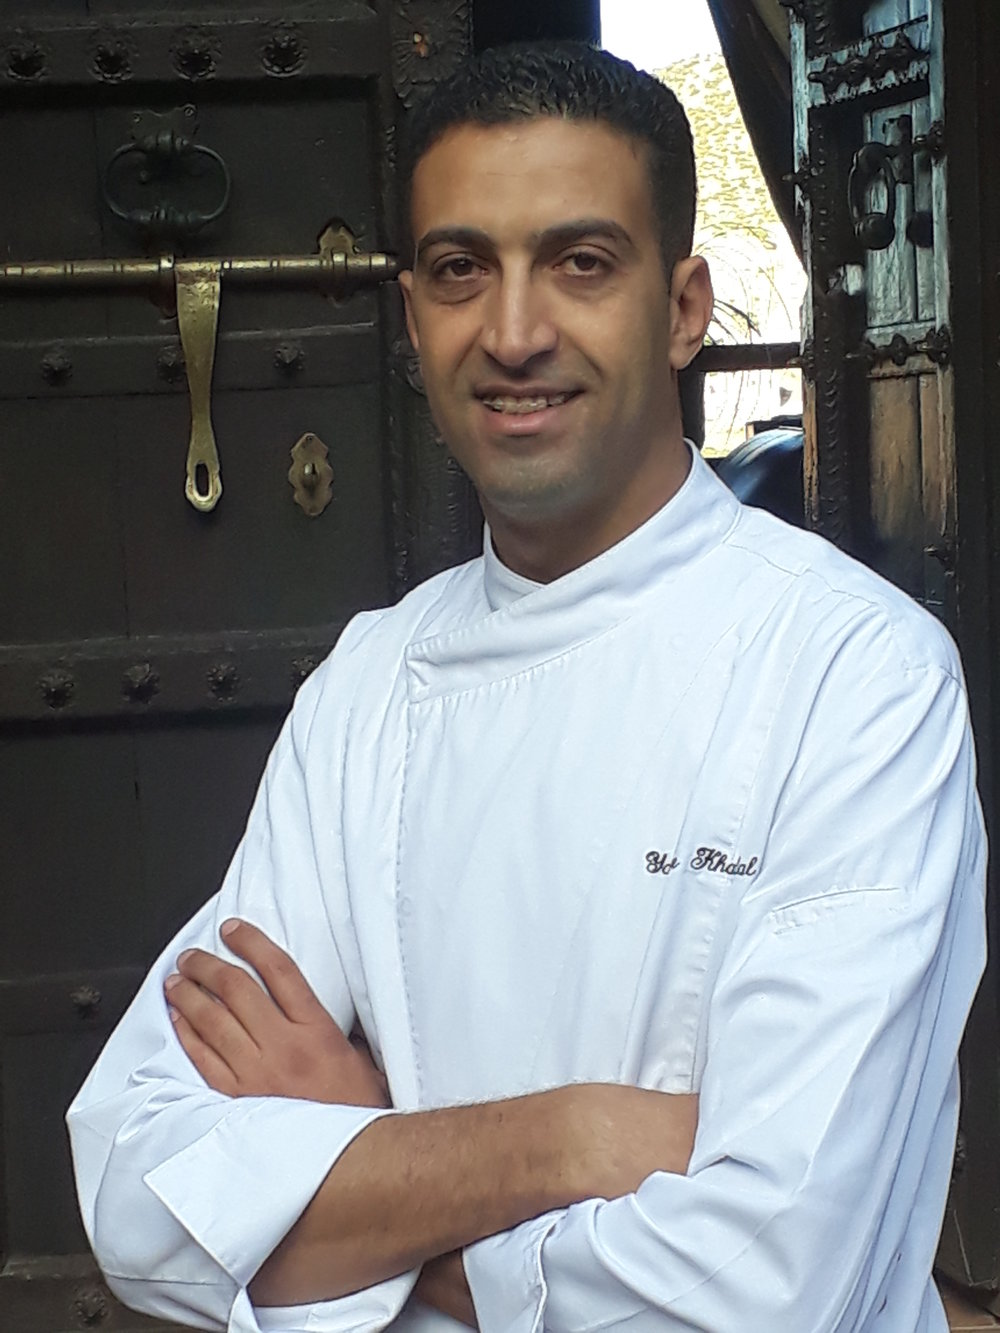 Yassine - Executive Chef.jpg